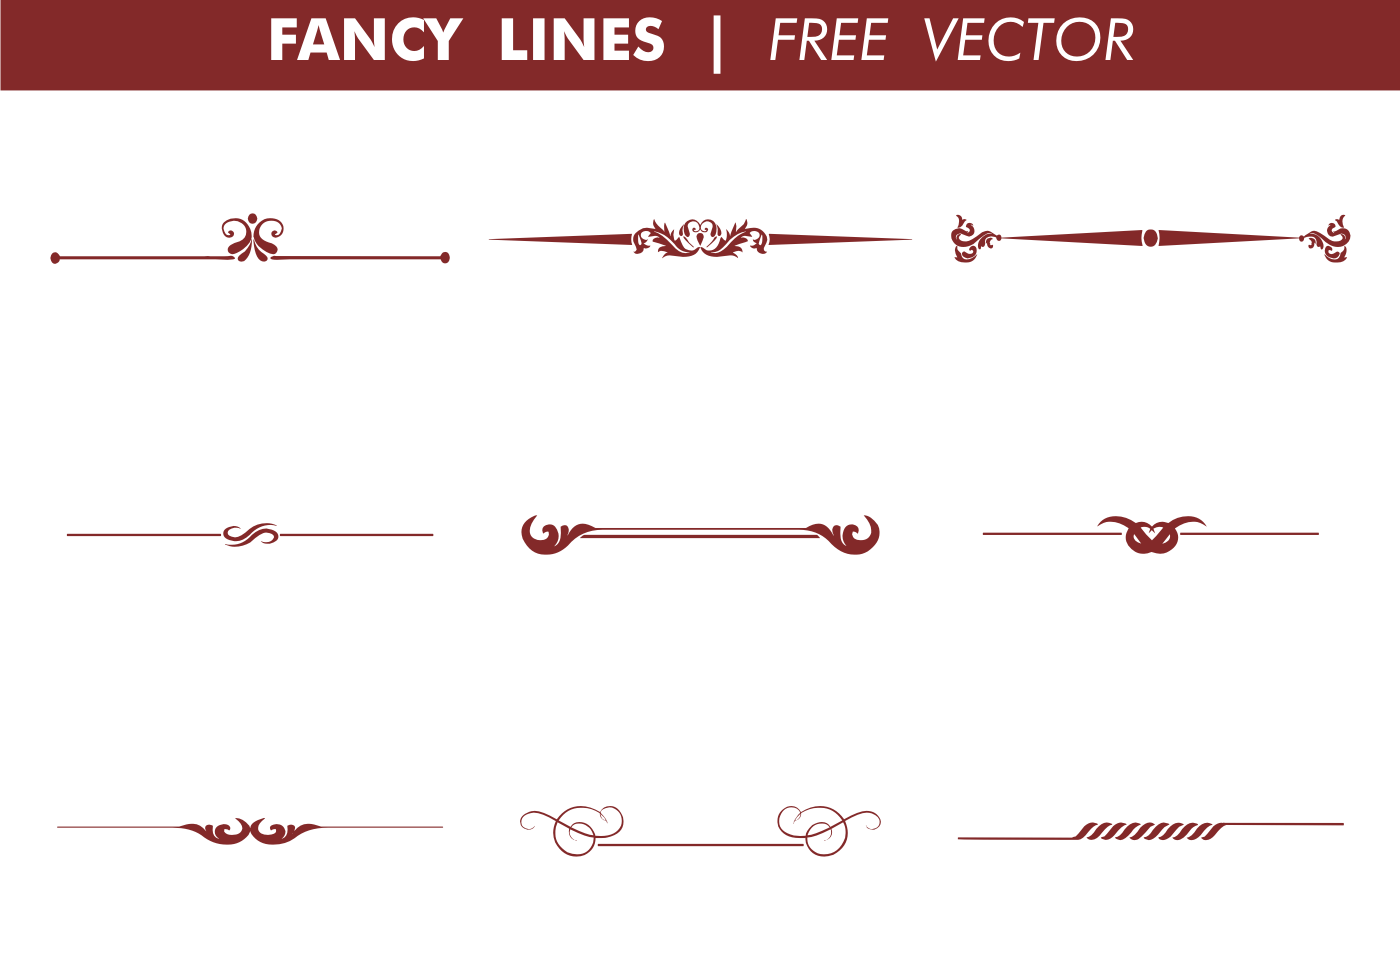 Line Art Software Free Download : Decorative fancy lines vector download free art